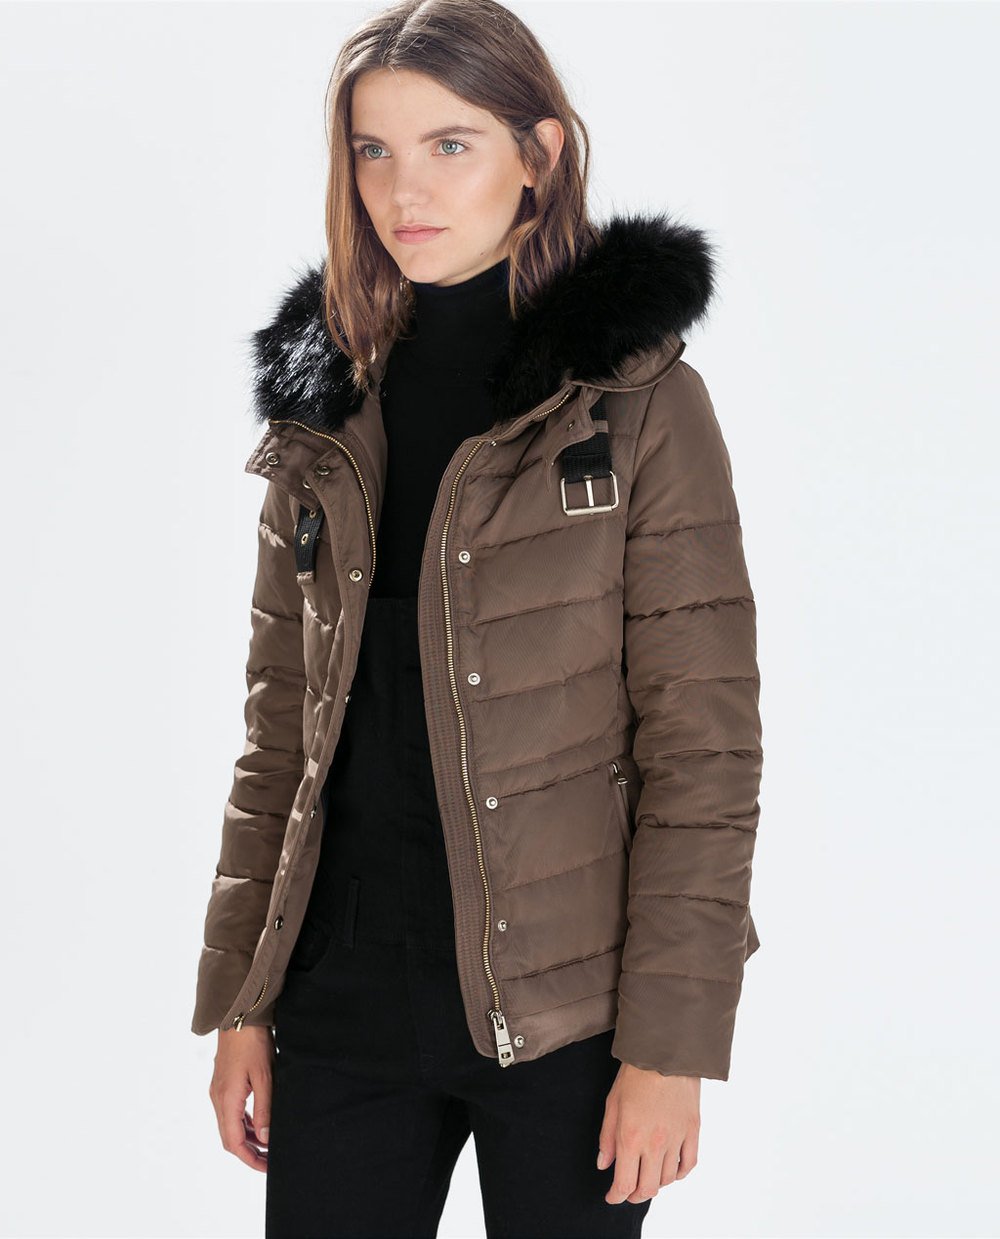 Puffer Jacket With Fur Hood - My Jacket